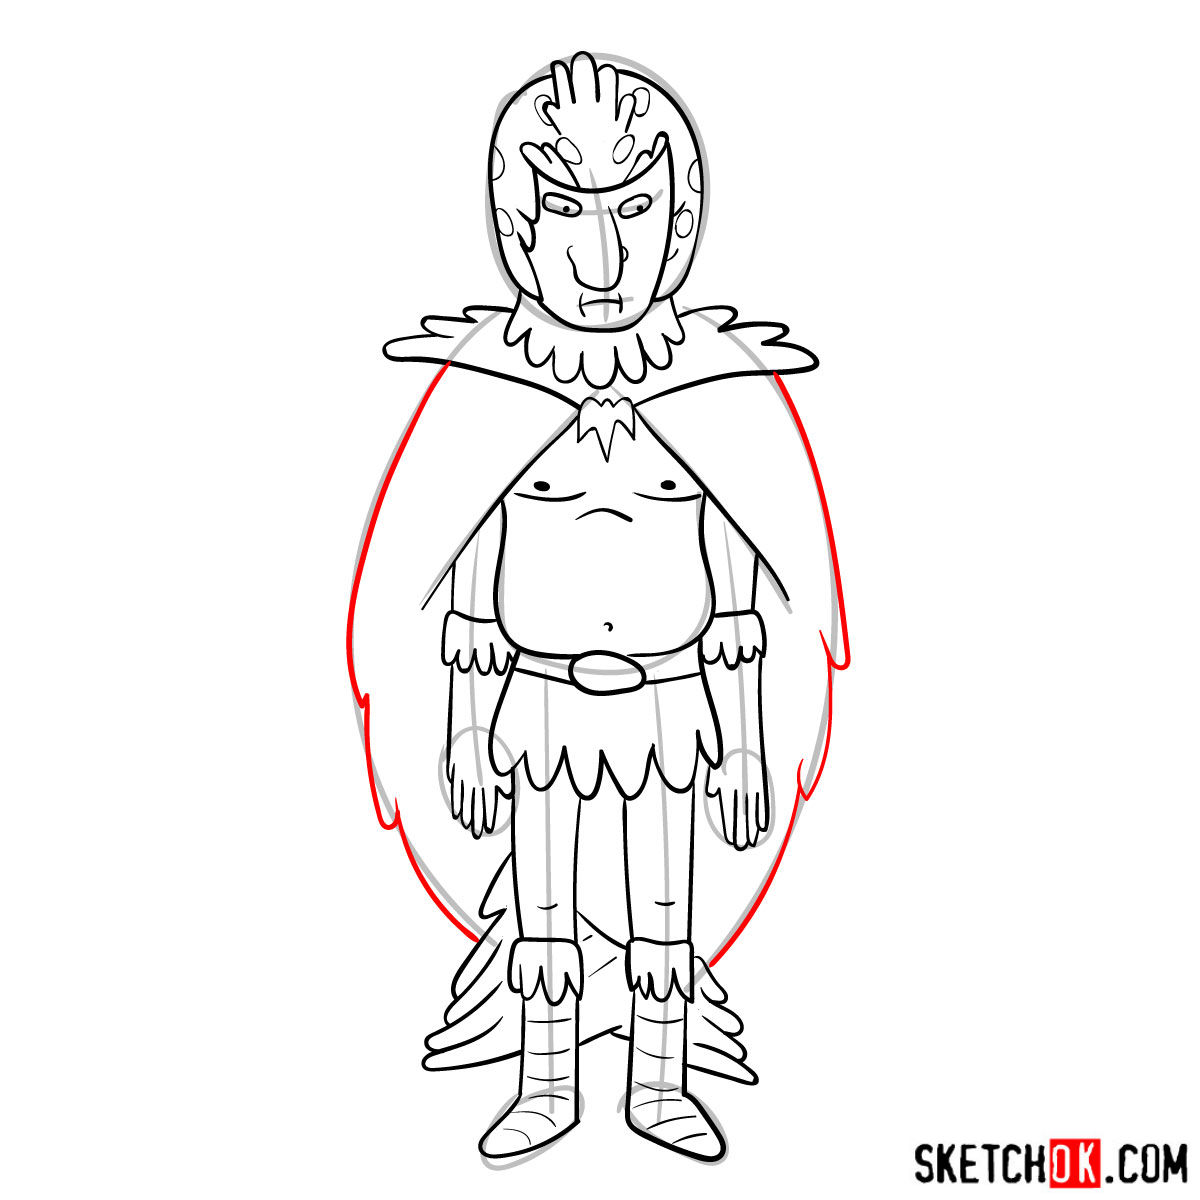 How to draw Birdperson from Rick and Morty series - step 12